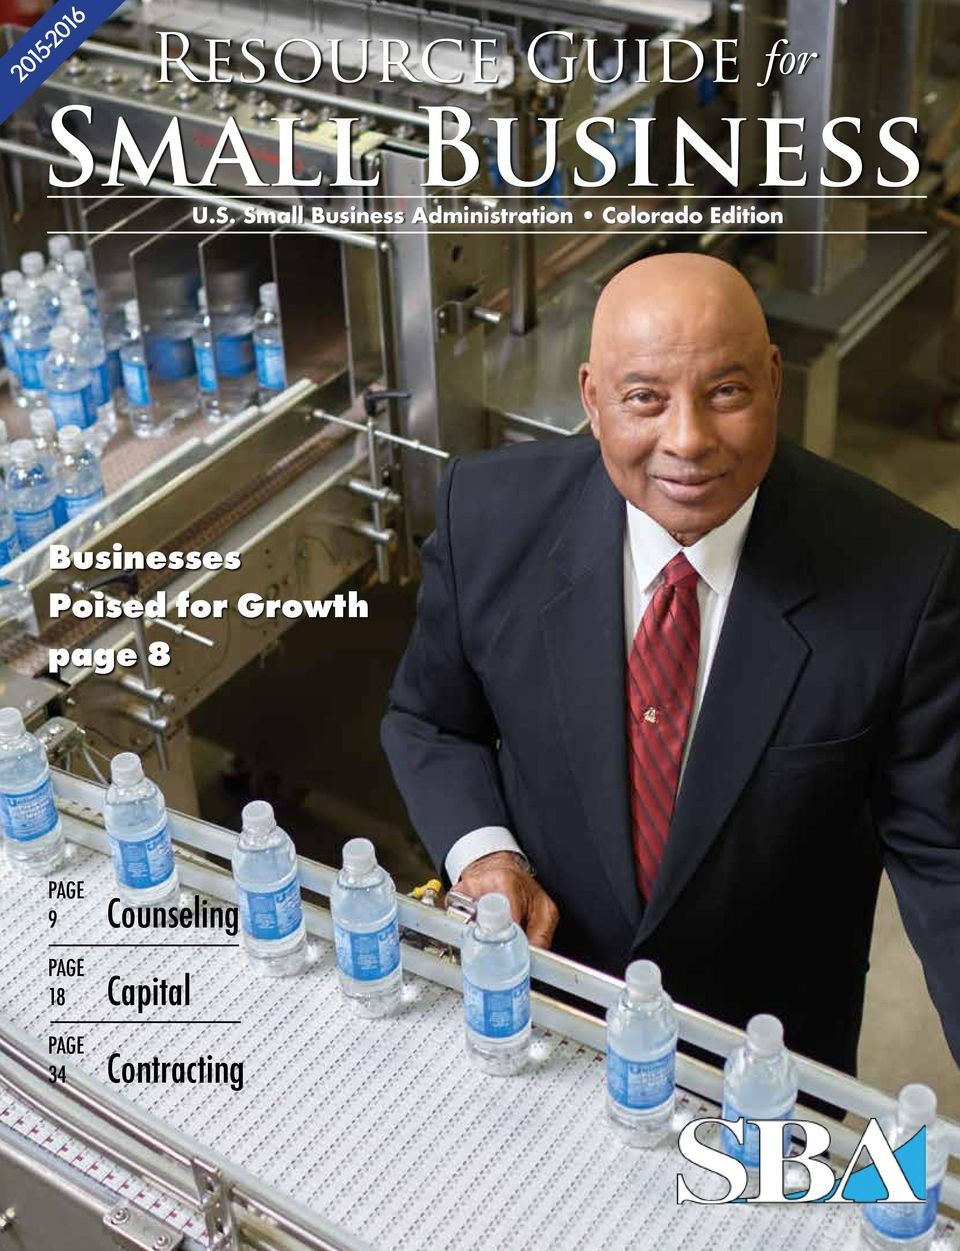 Edition Businesses Poised for Growth page 8